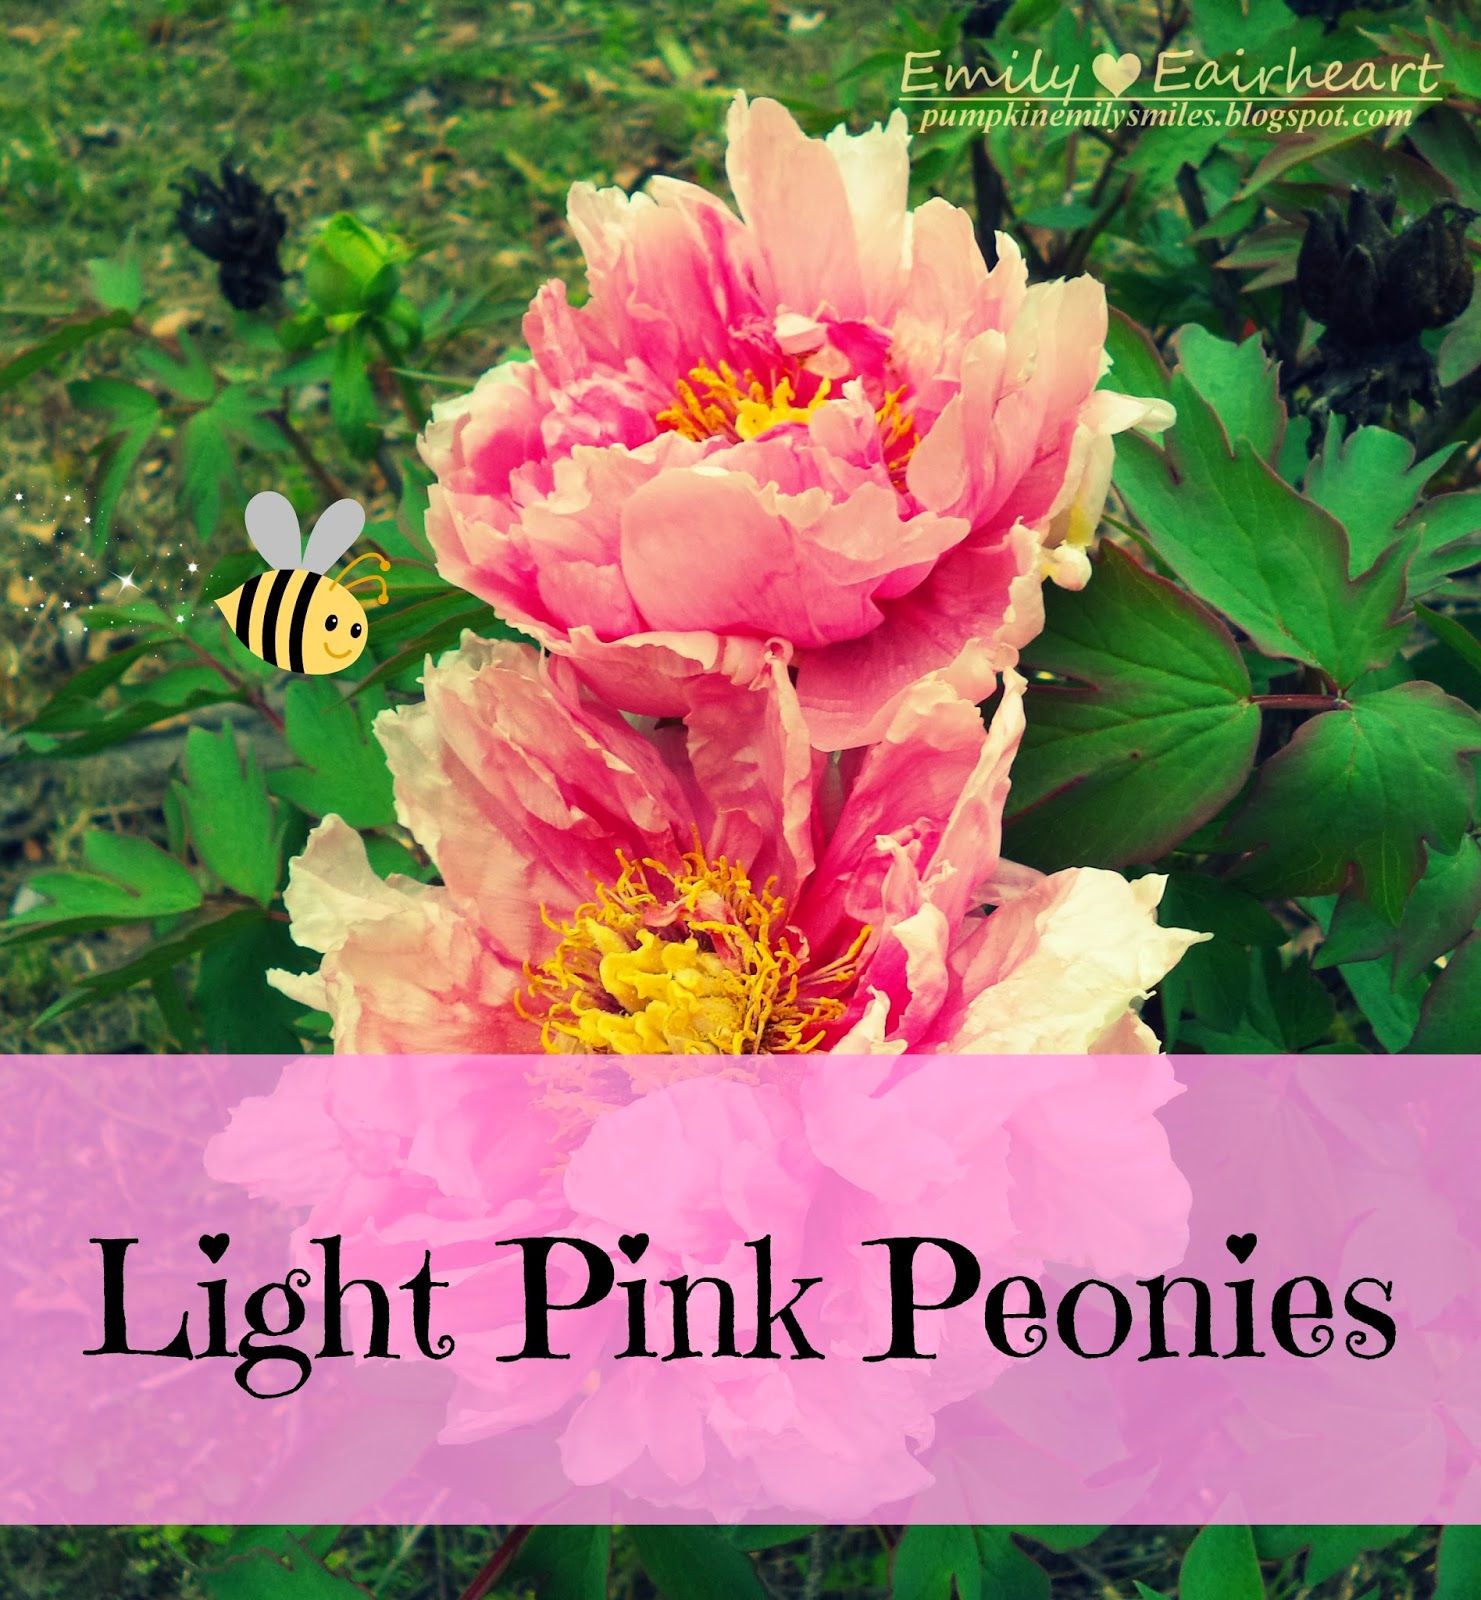 Image of two pink Peonies and image says Light Pink Peonies